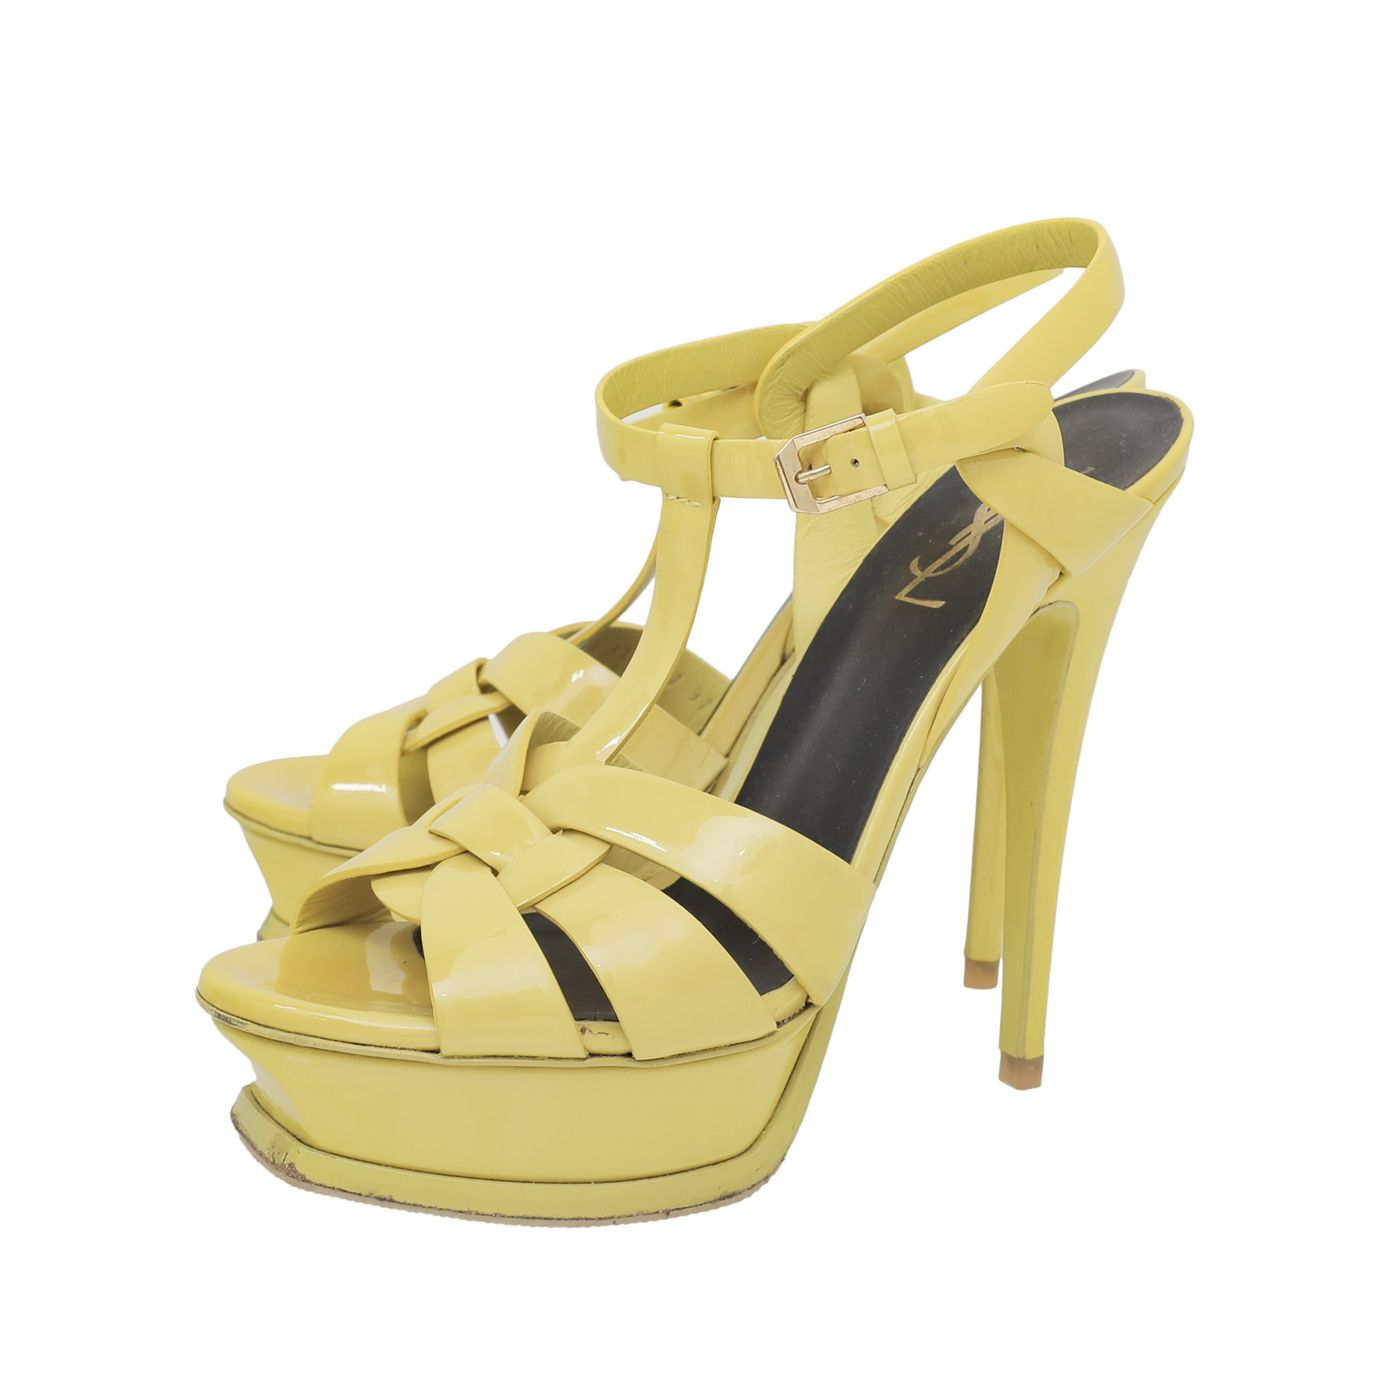 YSL Yellow Tribute High Heeled Sandals 37.5